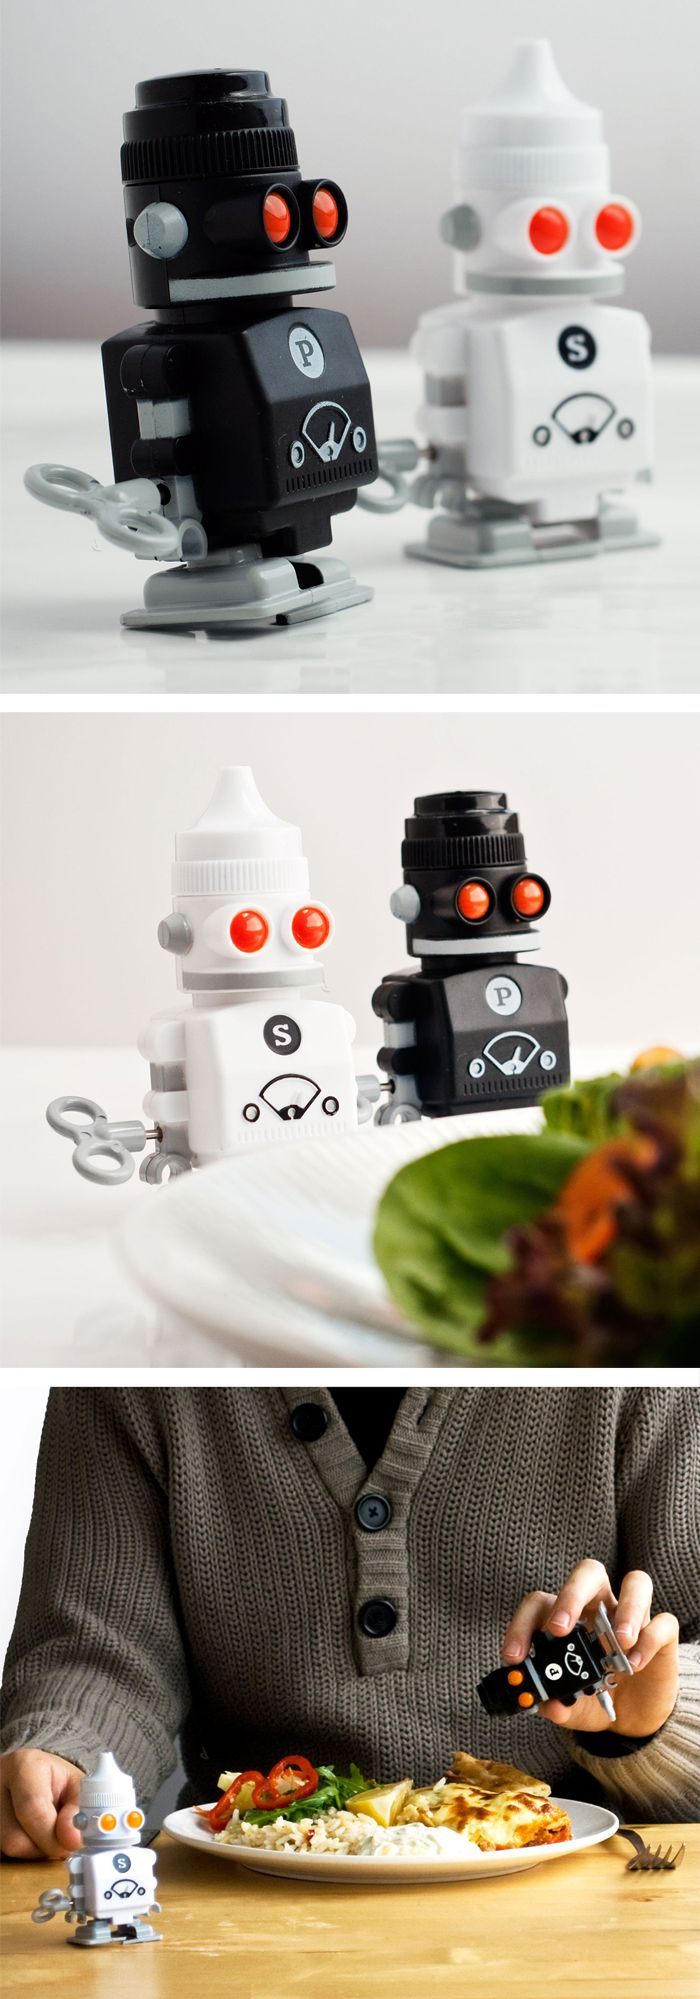 78 Best Images About Interesting On Pinterest Around: salt and pepper robots